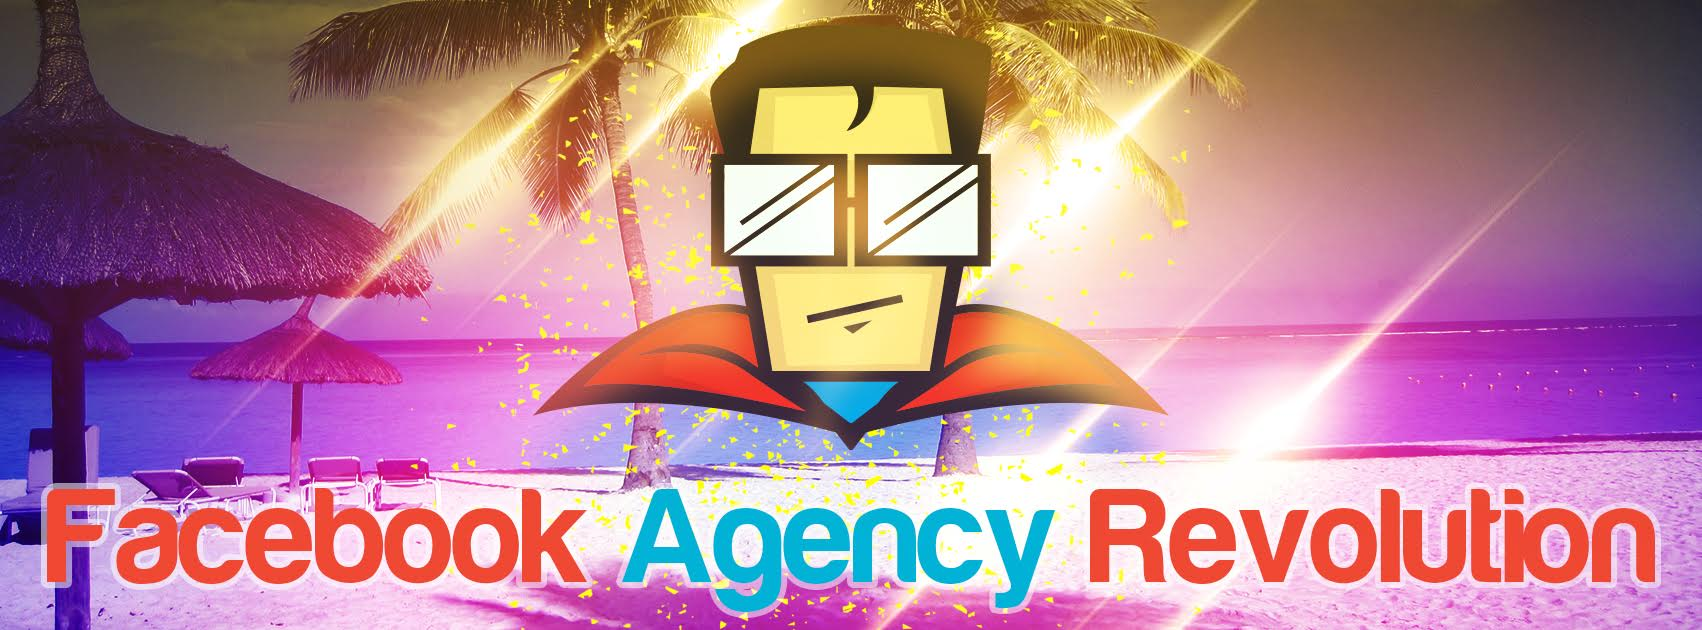 Facebook Agency Revolution – Jonny West download